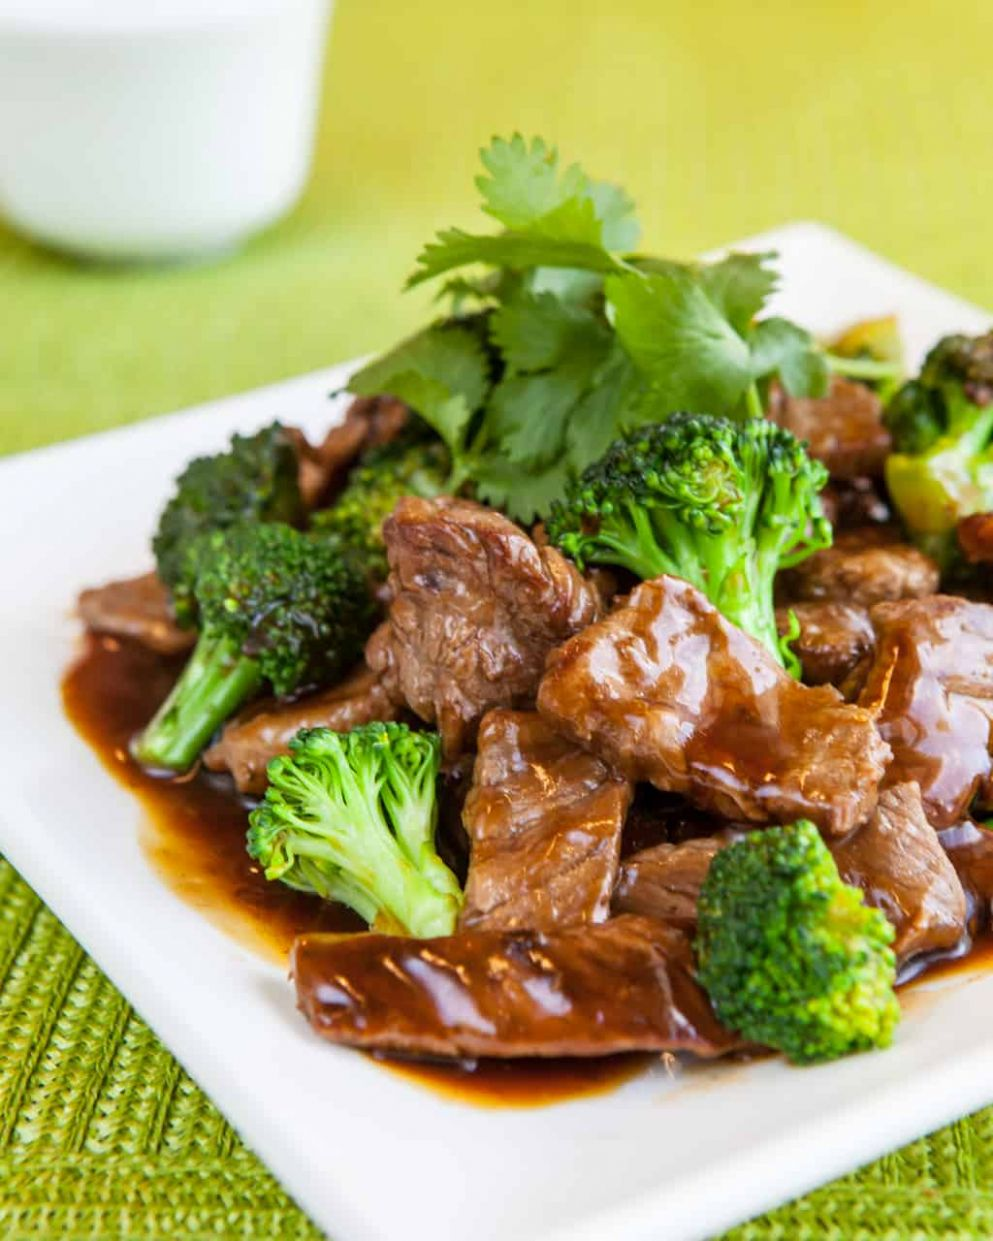 Chinese Broccoli Beef Recipe - Recipes Beef And Broccoli Chinese